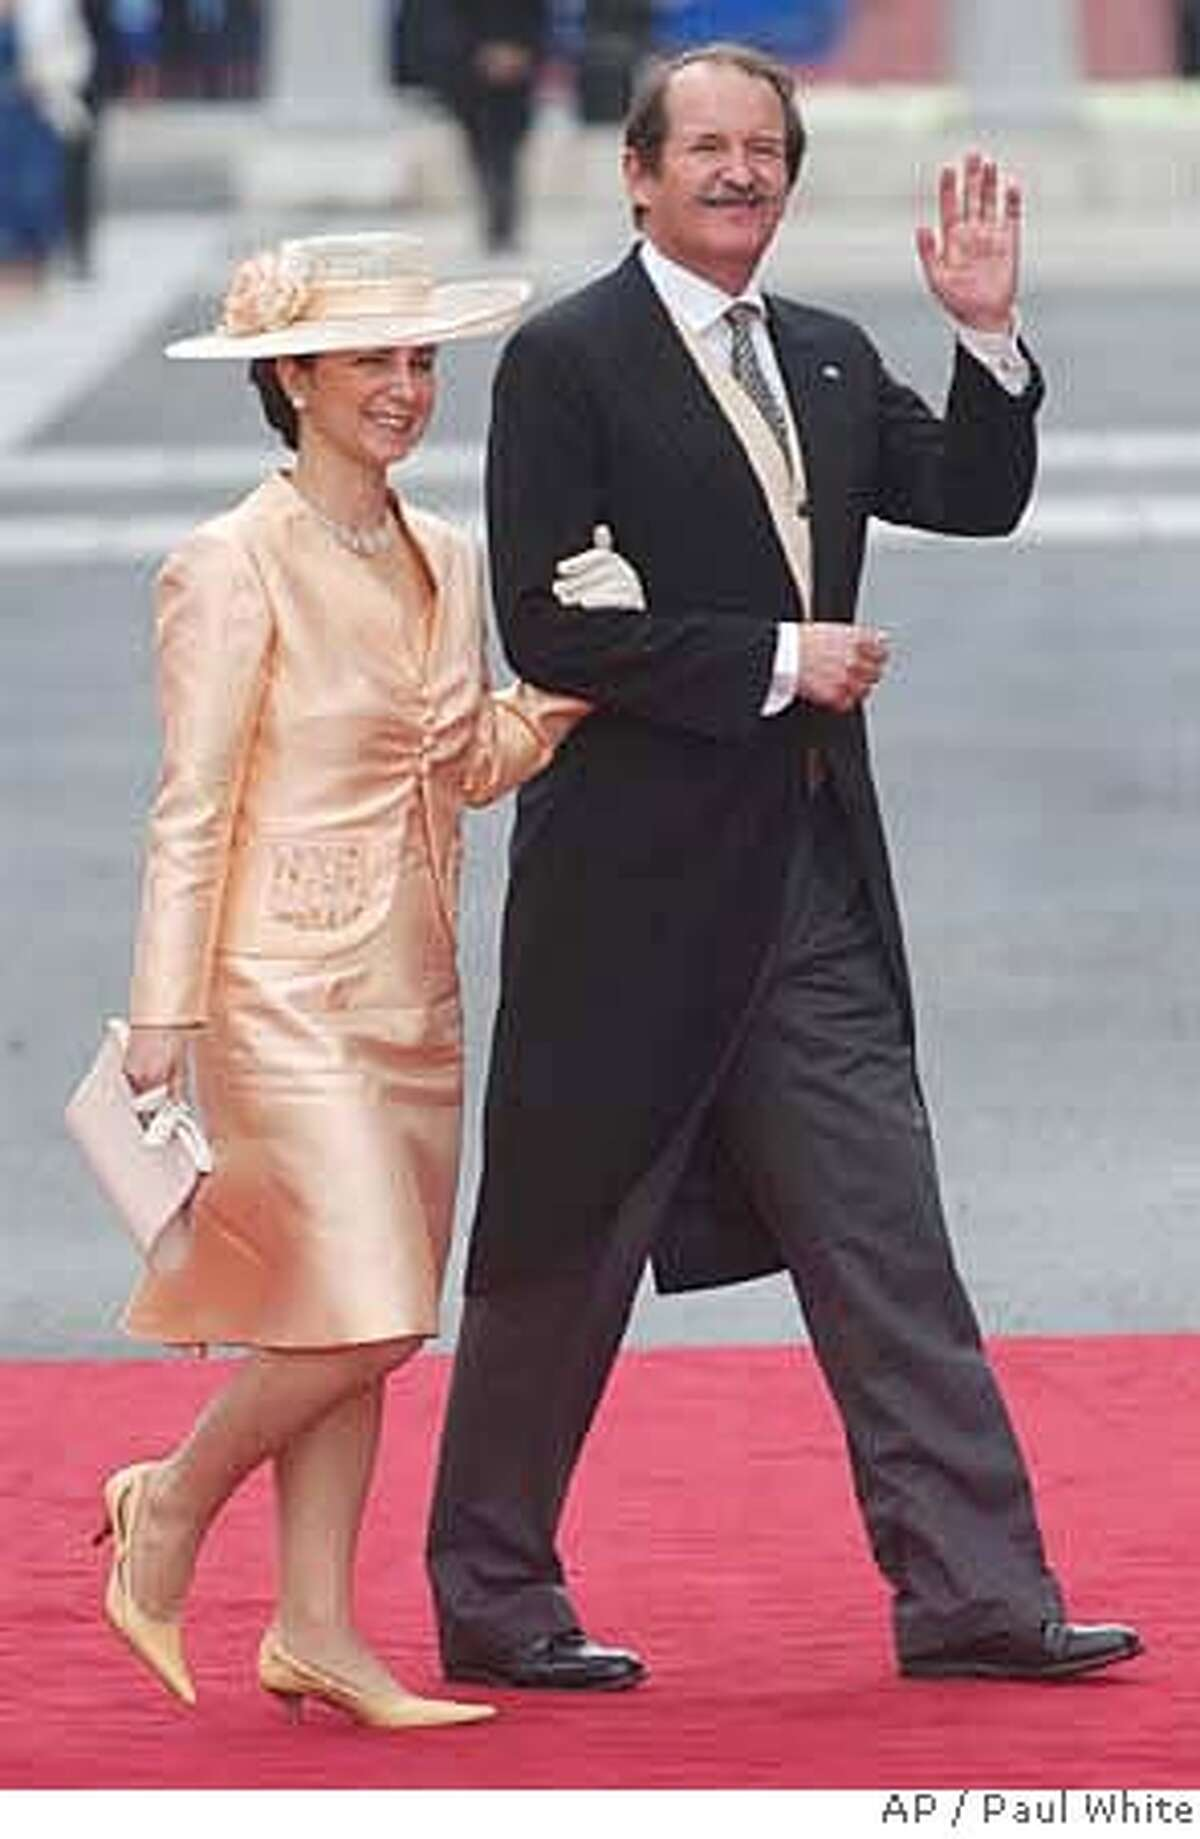 **APN ADVANCE FOR SUNDAY FEB. 17** Portugal's Duke of Braganza Duarte Pio, the next in line to the Portuguese throne, and his wife Isabel Herediaare seen arriving at Madrid's Almudena cathedral in this May 22 2004 file photo, to attend the wedding of Spain's Crown Prince Felipe to Letizia Ortiz. The centenary on Feb. 1 2008 of the assassination of Portuguese King Carlos I has taken Duarte Pio beyond the pages of glossy magazines and into the mainstream political debate. Pio would by birthright be sovereign if Portugal restored its monarchy, and he is using public interest in the Friday centenary of King Carlos I's assassination to make his case for a return to royal influence on a continent proud of its democratic traditions. He claims that at the start of the past century, before republicans deposed Carlos I's successor - Manuel II - by force in 1910, Portugal packed a bigger economic and diplomatic punch than it does now as one of the European Union's lightweights. (AP Photo/Paul White) **APN ADVANCE FOR SUNDAY FEB. 17**